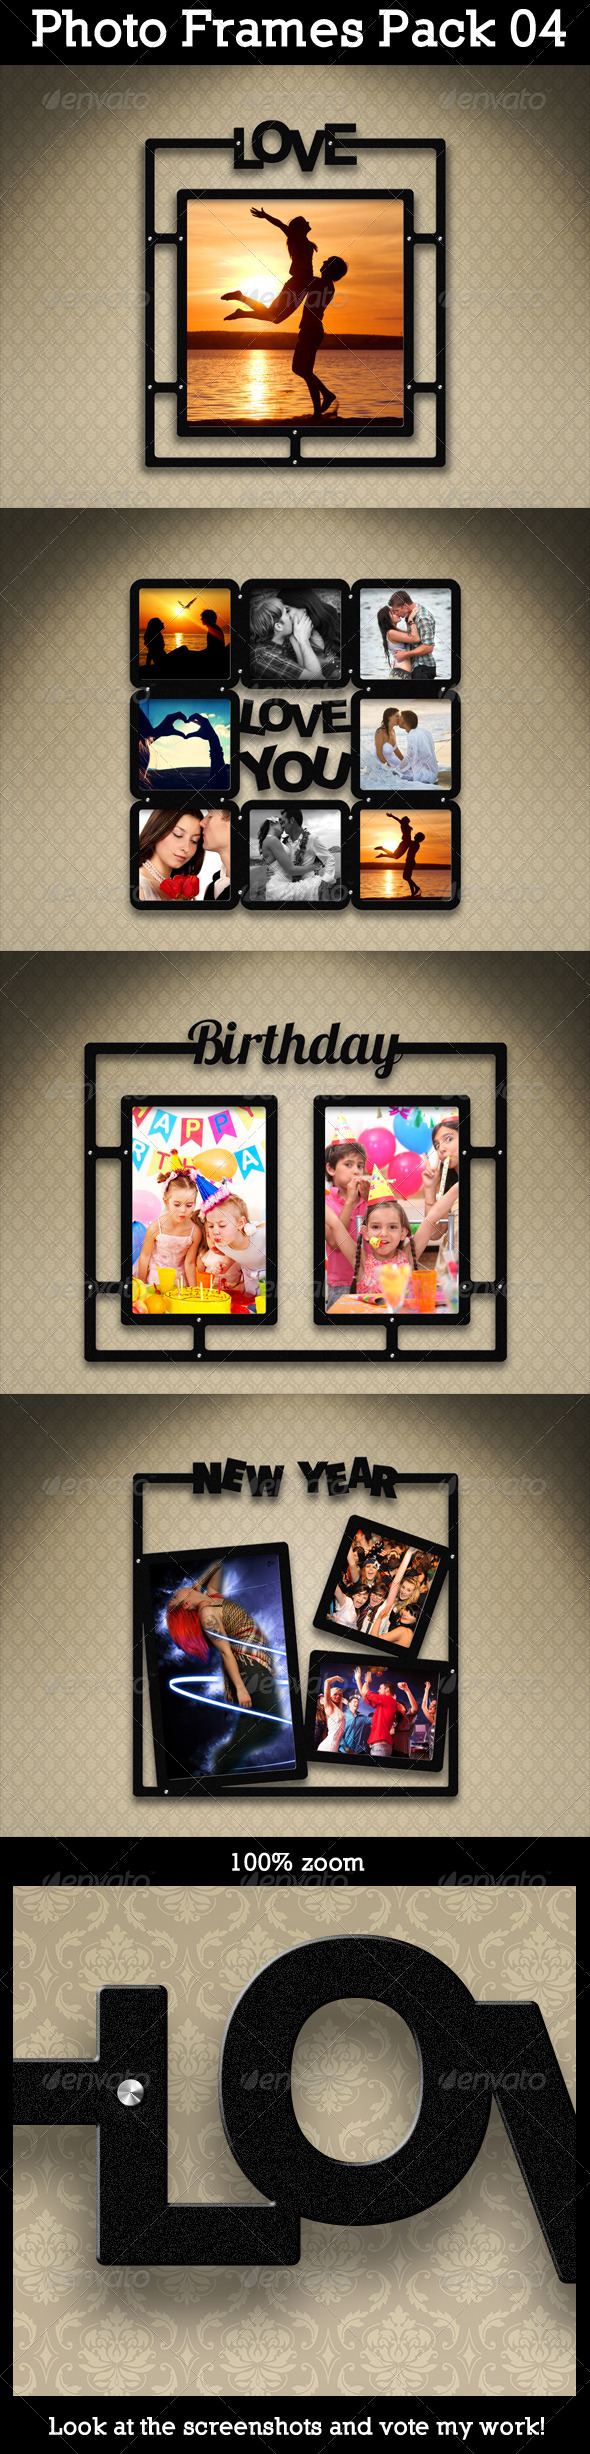 Photo Frames Pack Graphics, Designs & Templates